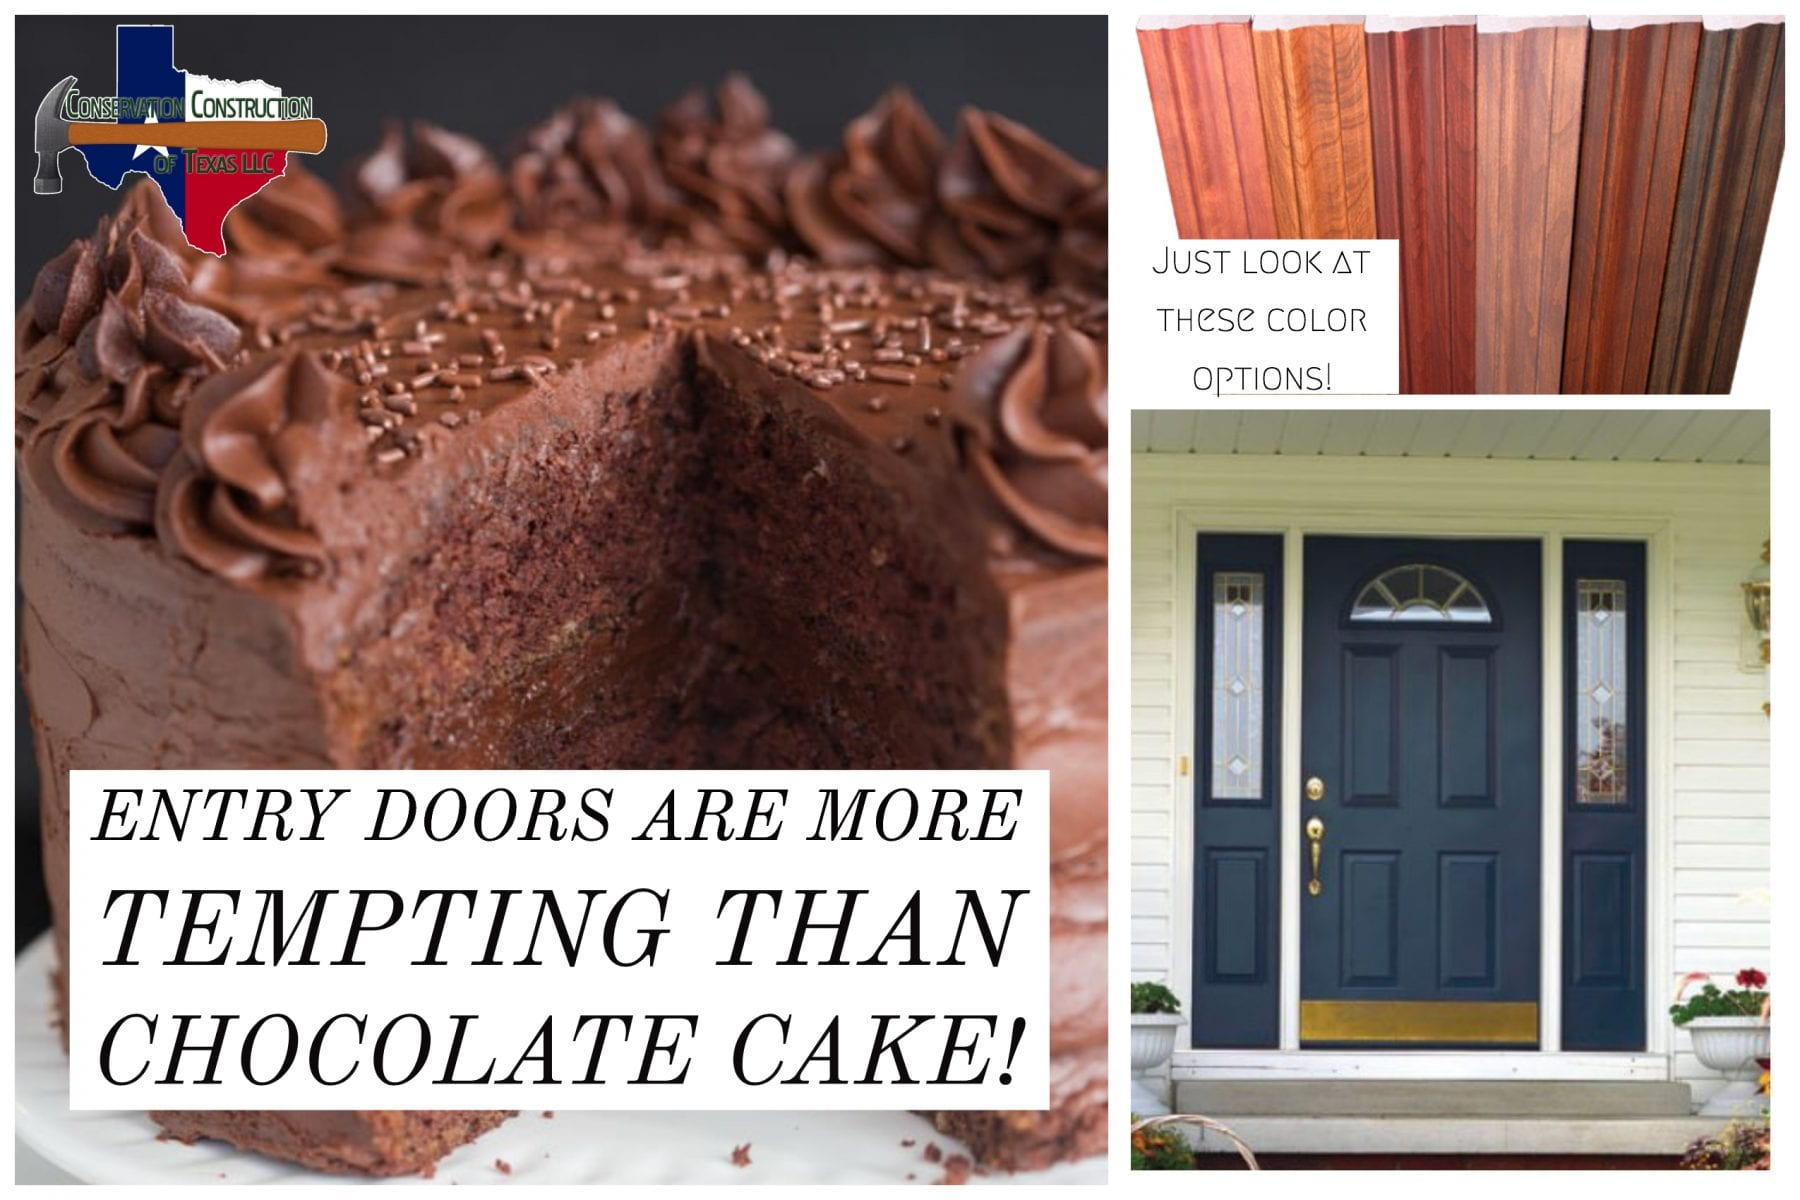 Entry Doors Are More Tempting Than Chocolate Cake Conservation